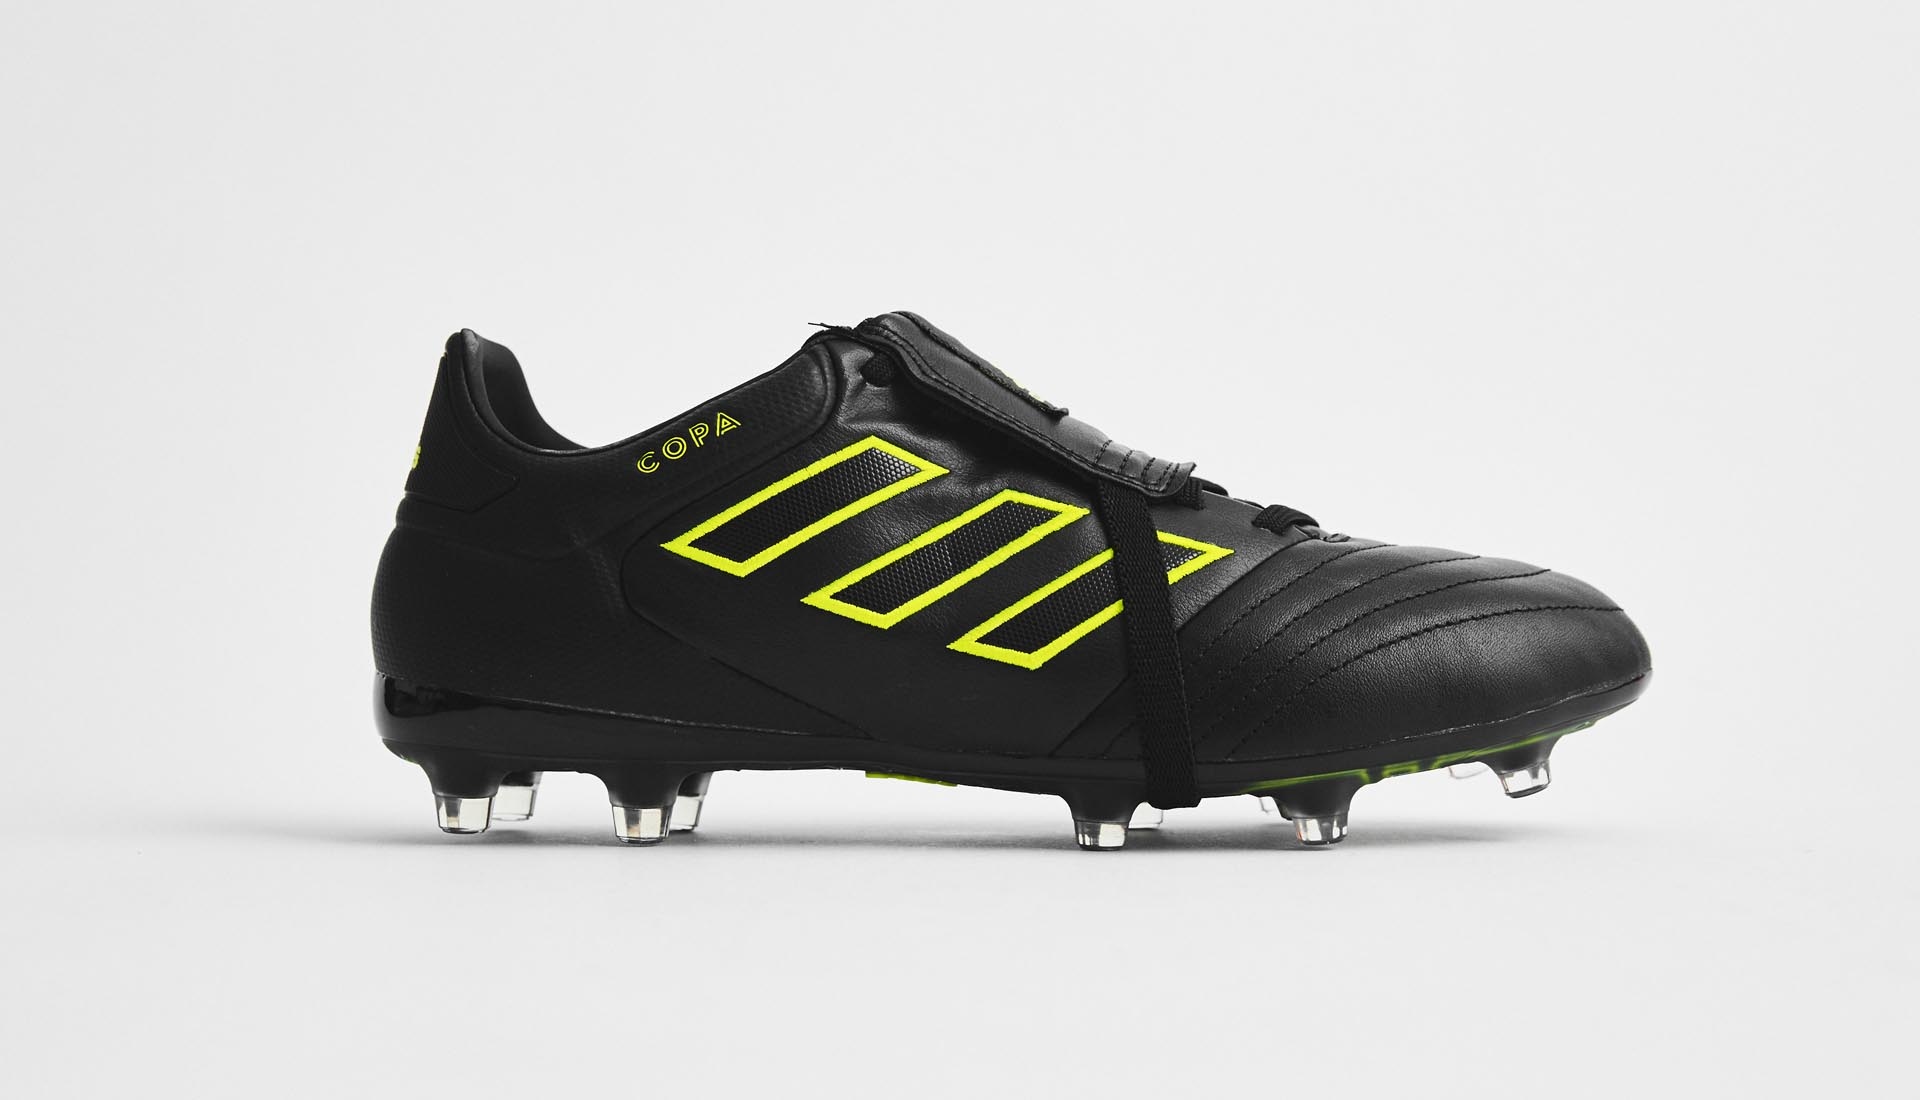 09859009fcb Our Top Boots From Pro Direct s Black Friday 2017 Deals - SoccerBible.